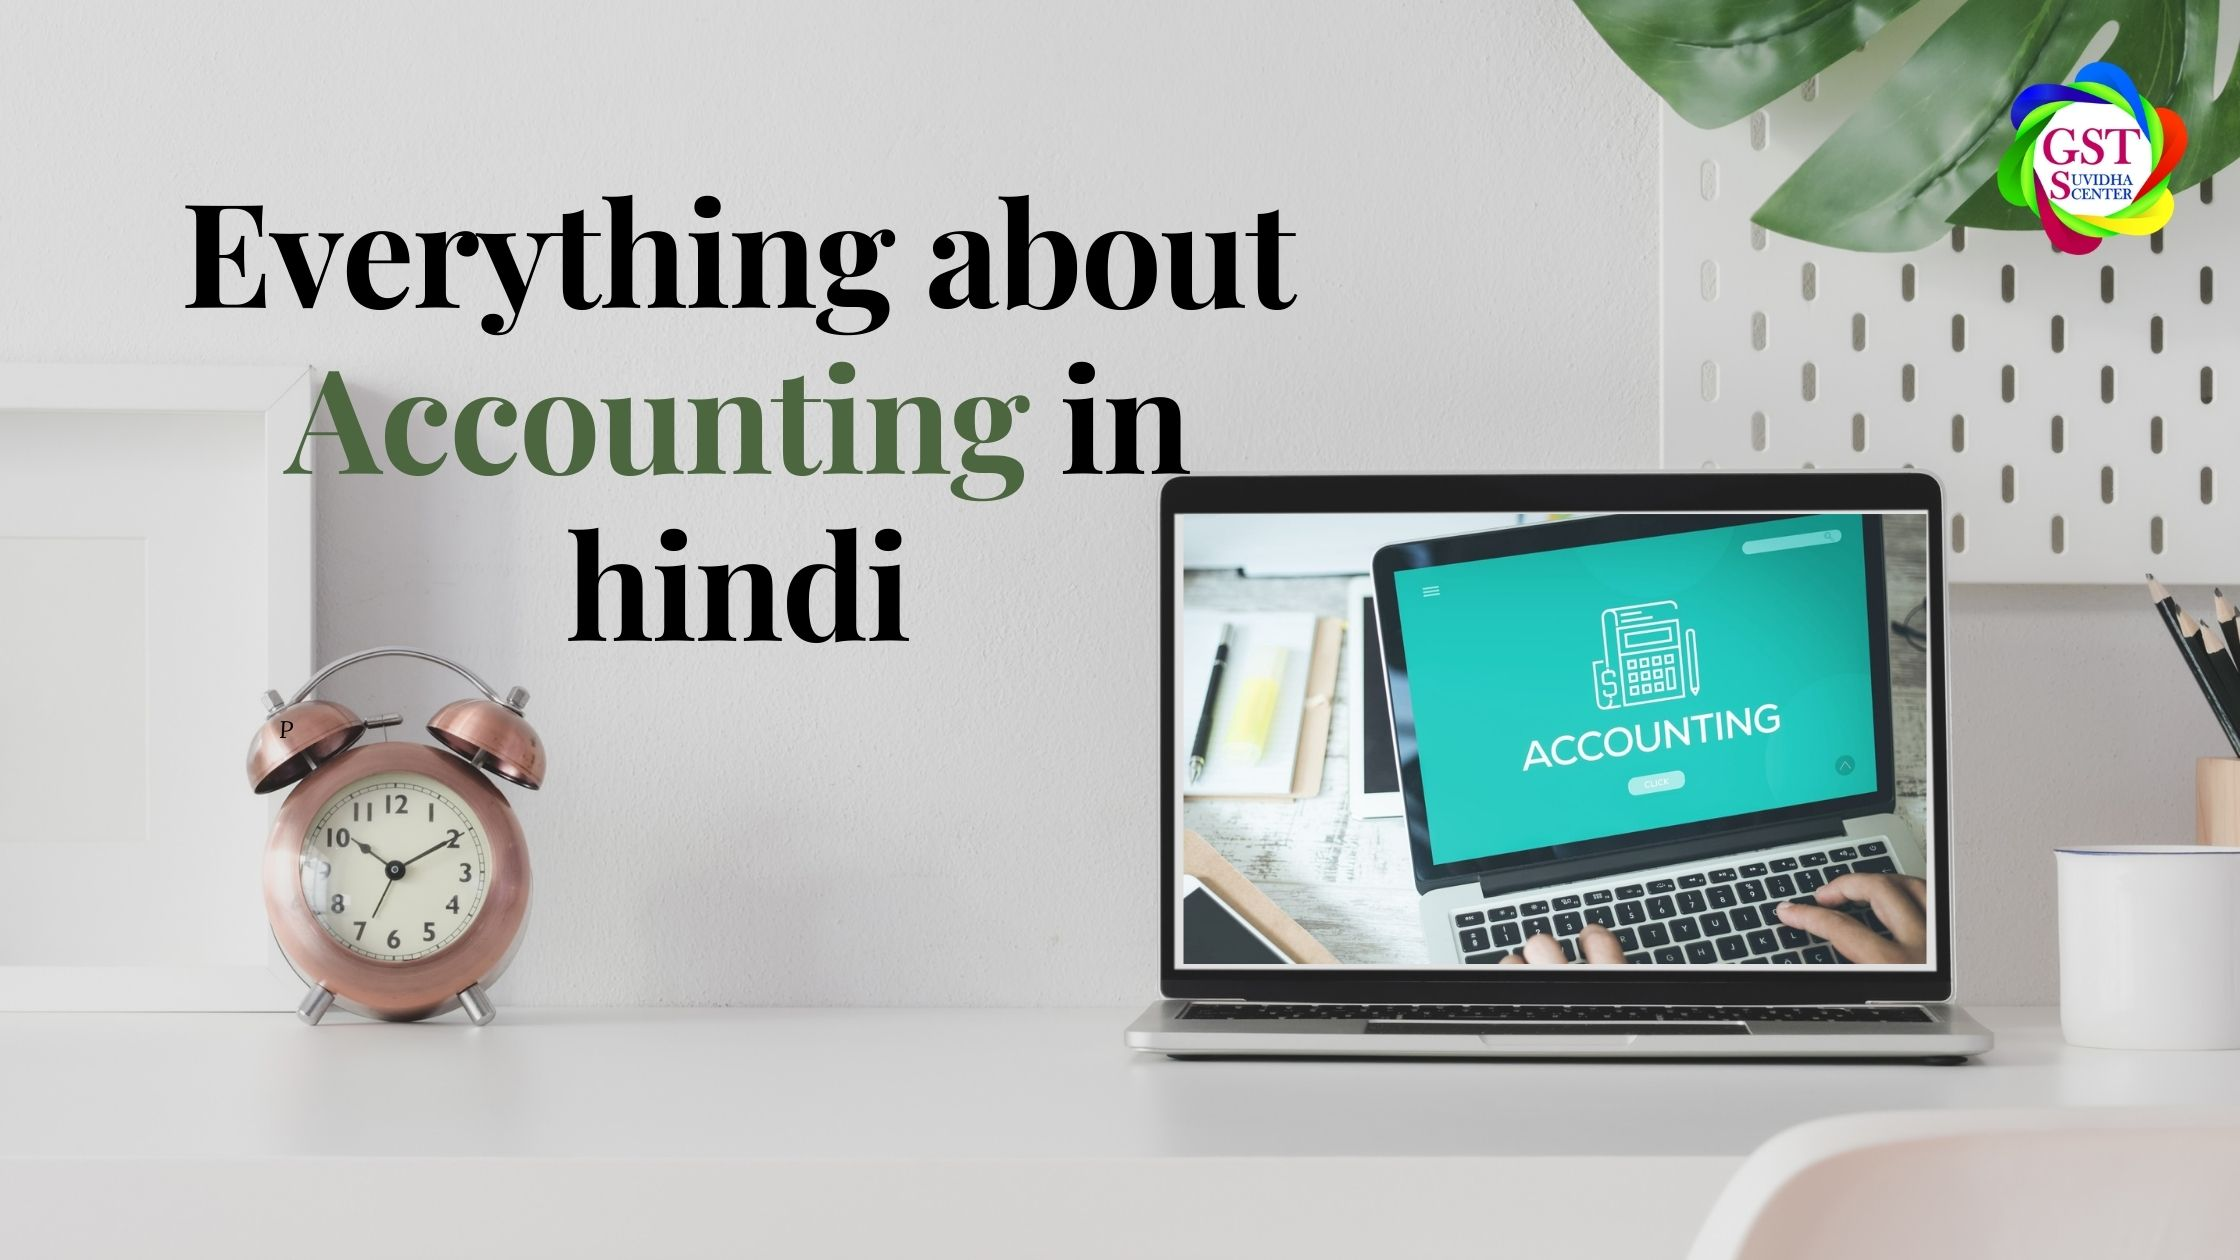 GST Suvidha Center and Accounting in Hindi